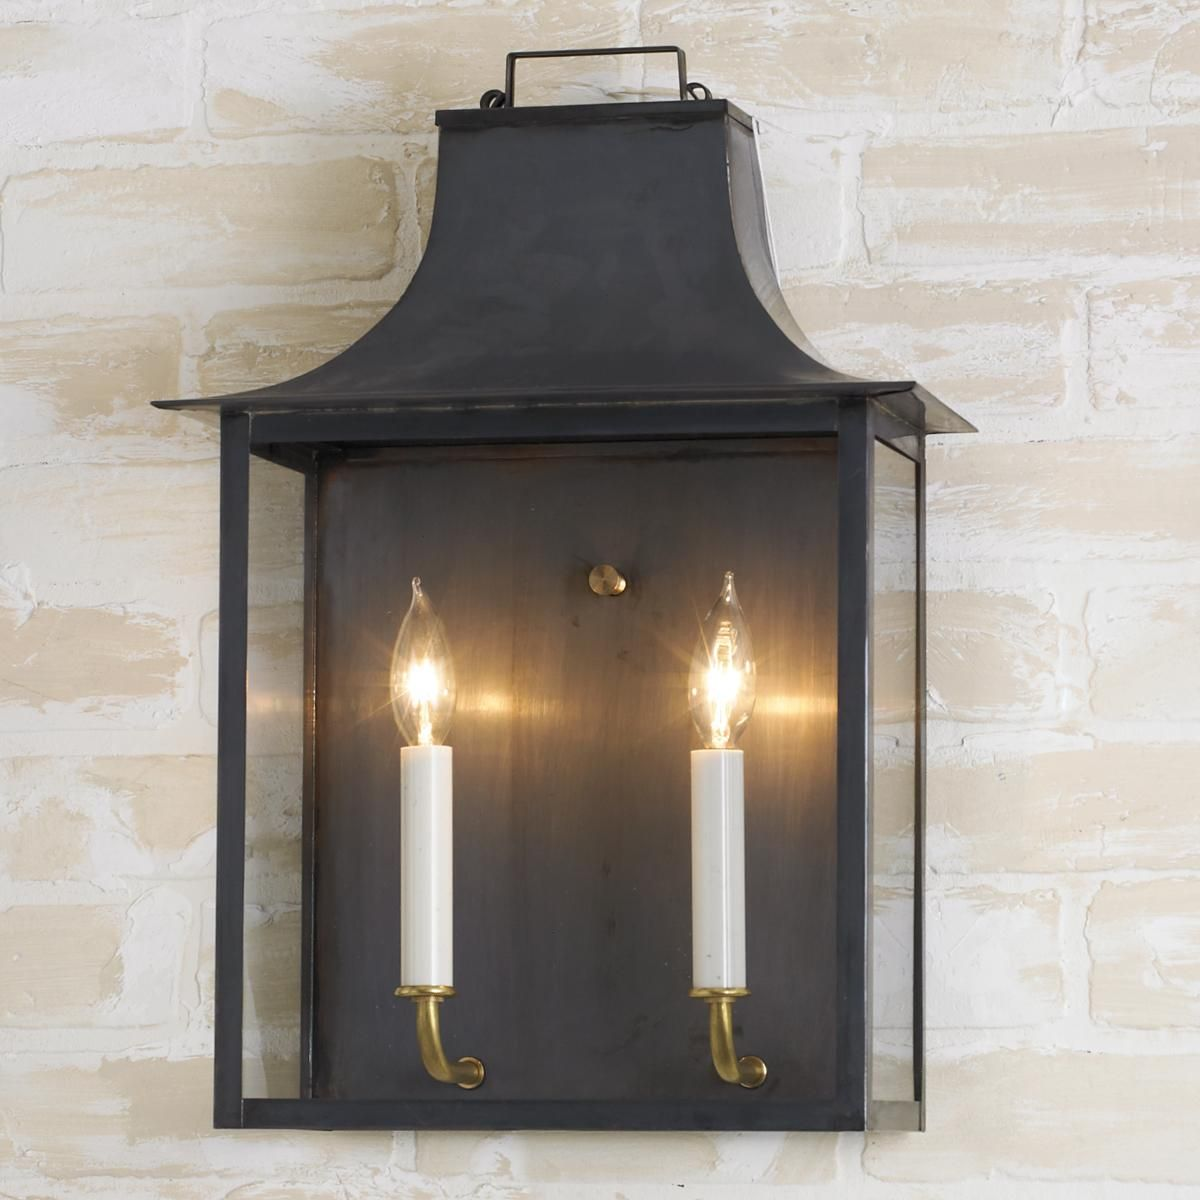 Georgian Outdoor Wall Light 2